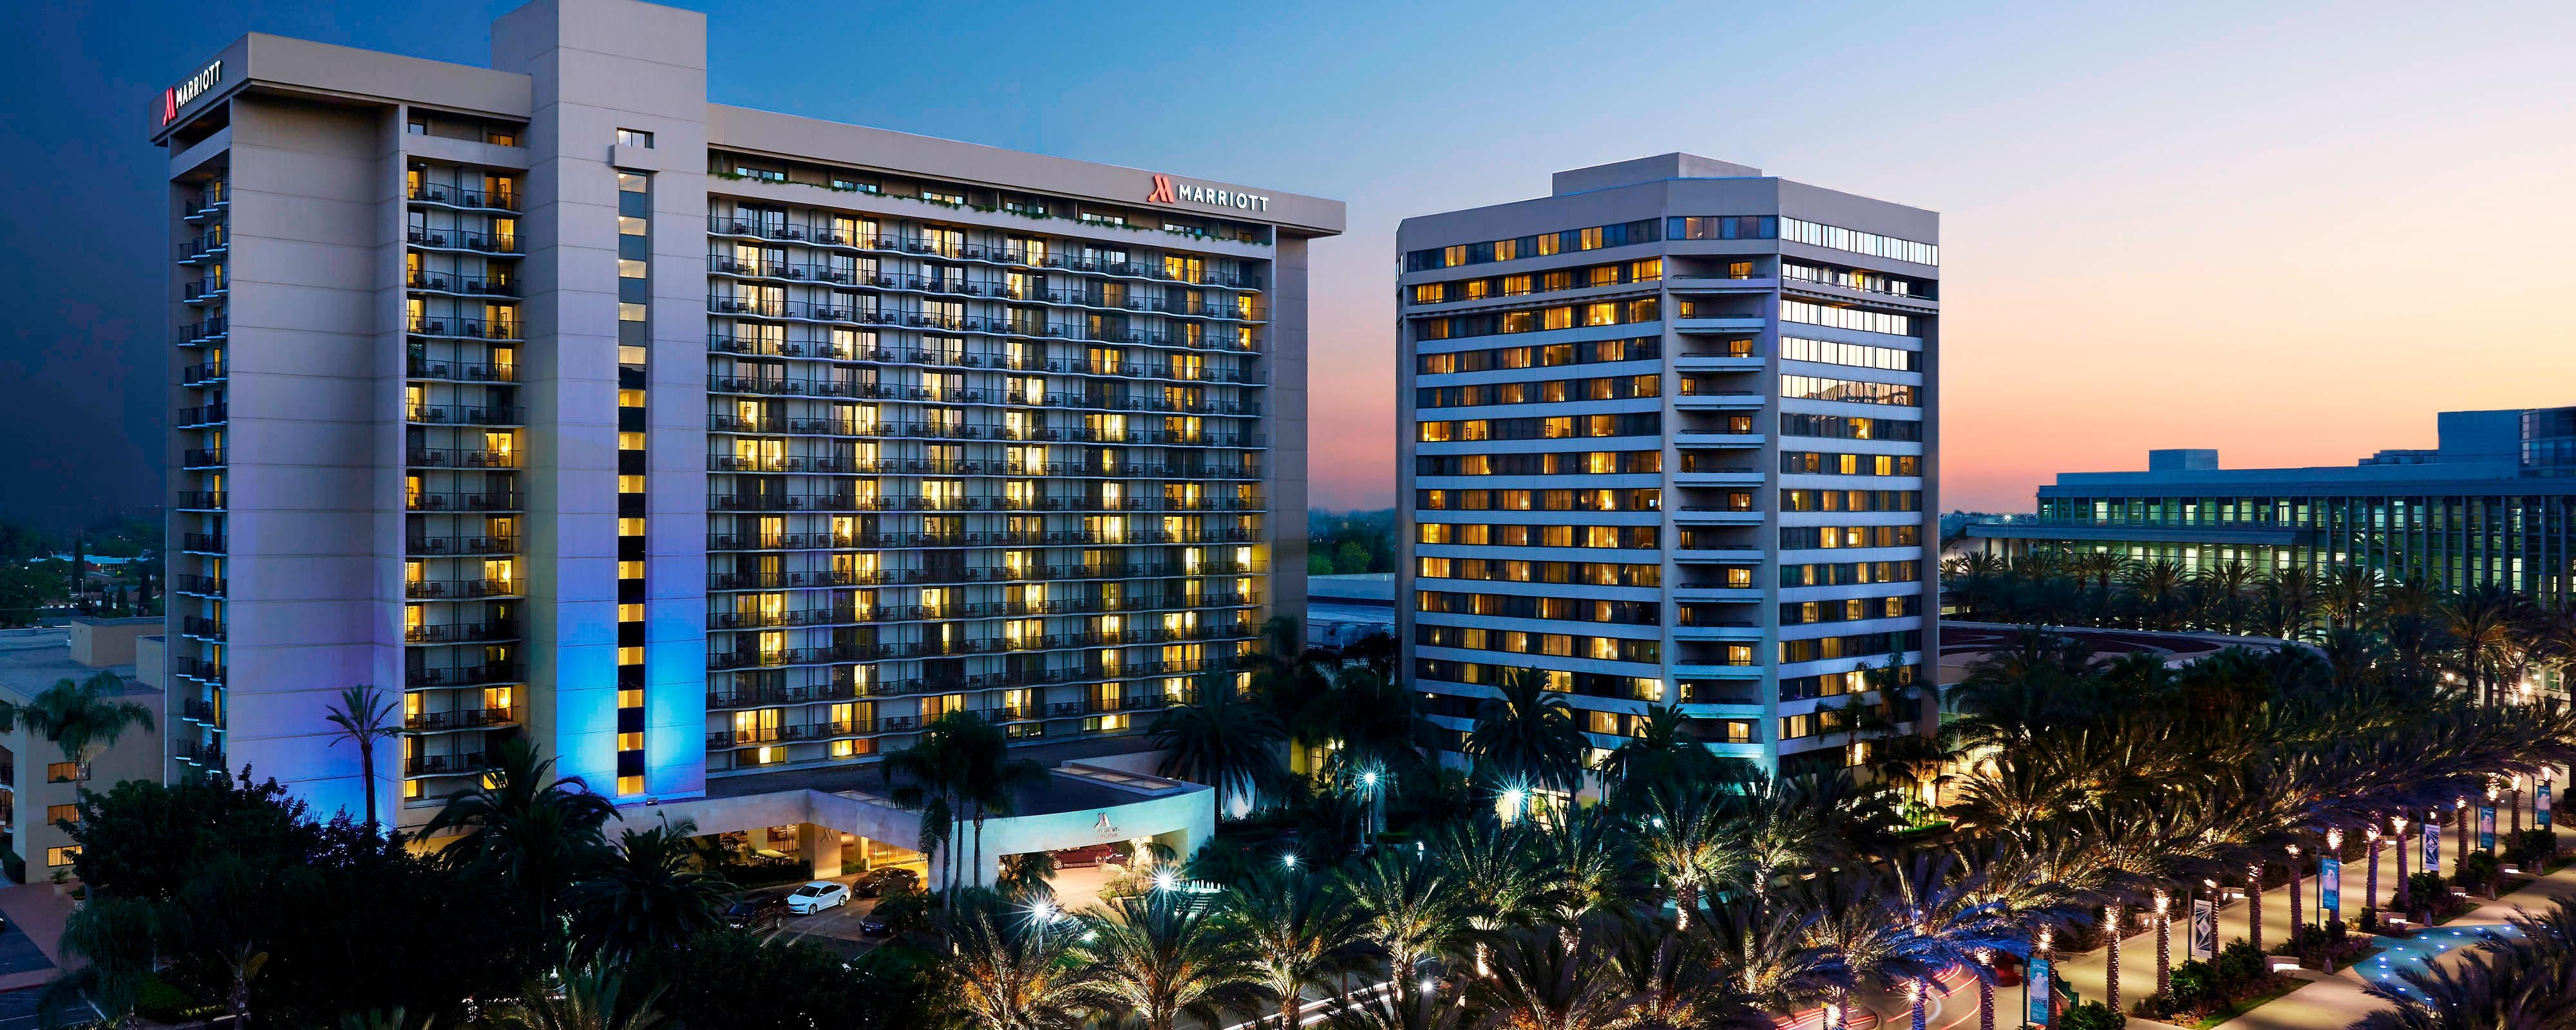 Anaheim Marriott no fim da tarde